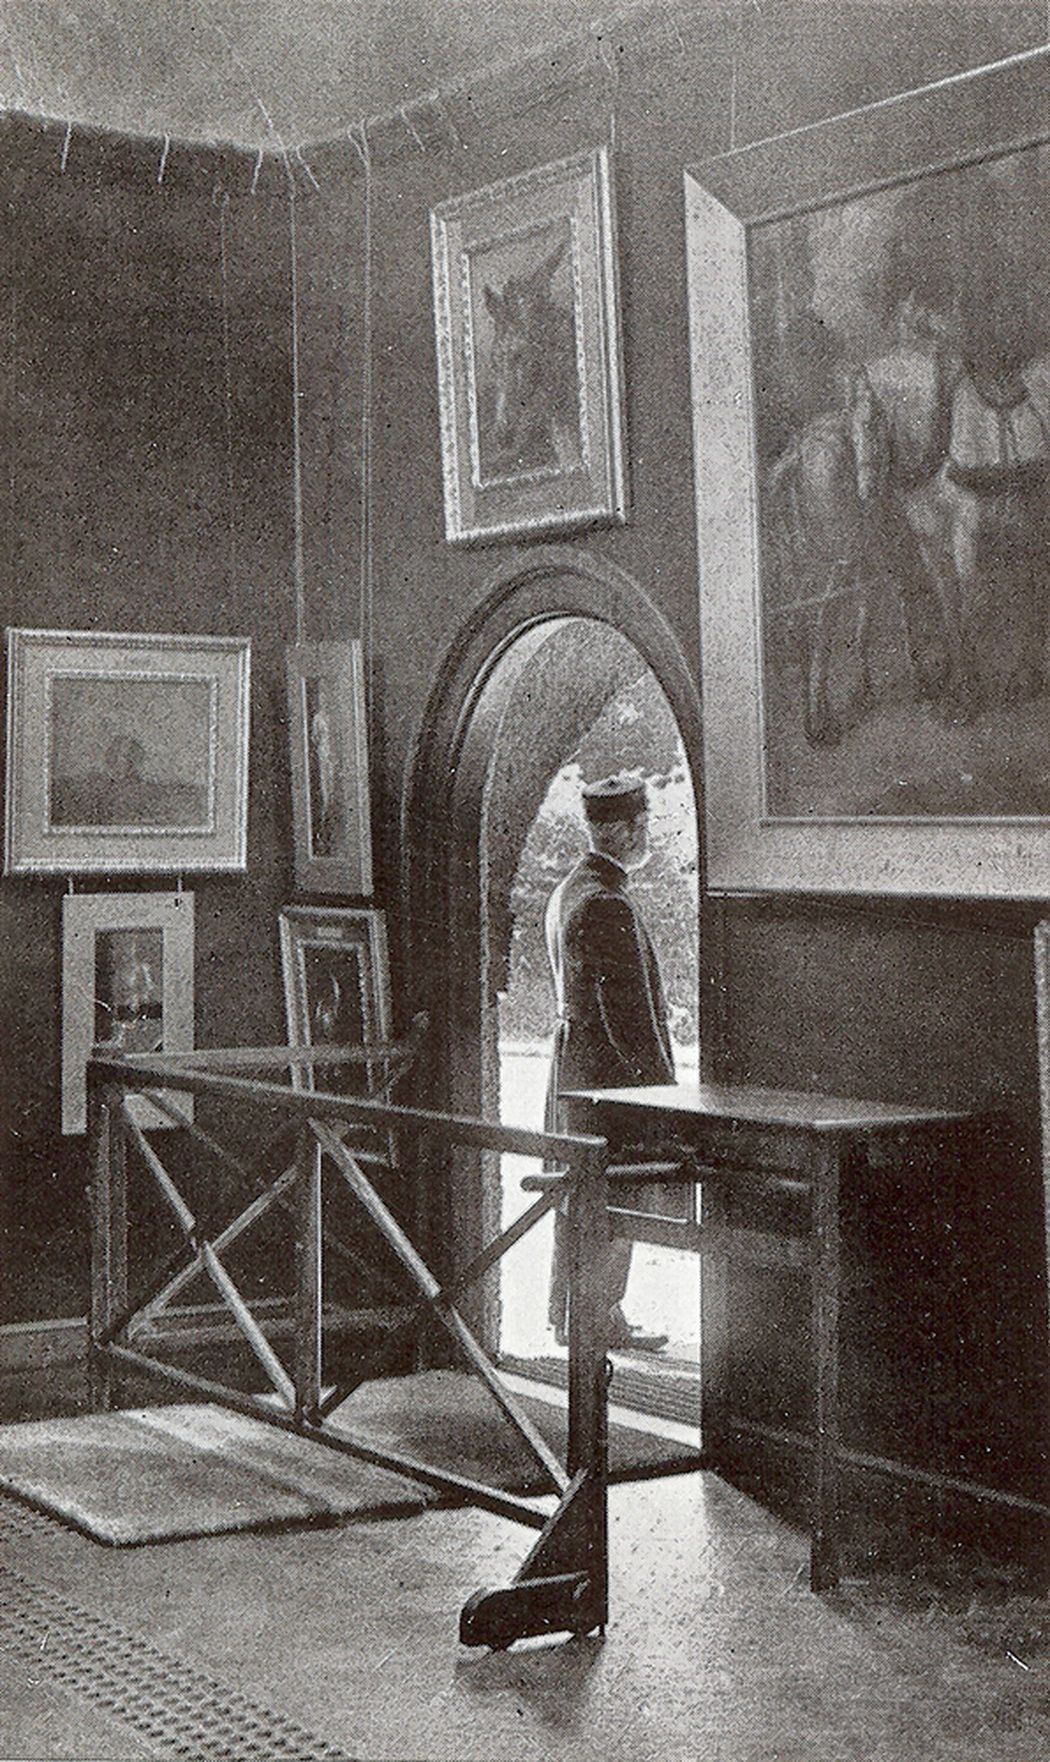 Old Photo of G F Watts standing outside the Gallery, shot from the interior view.